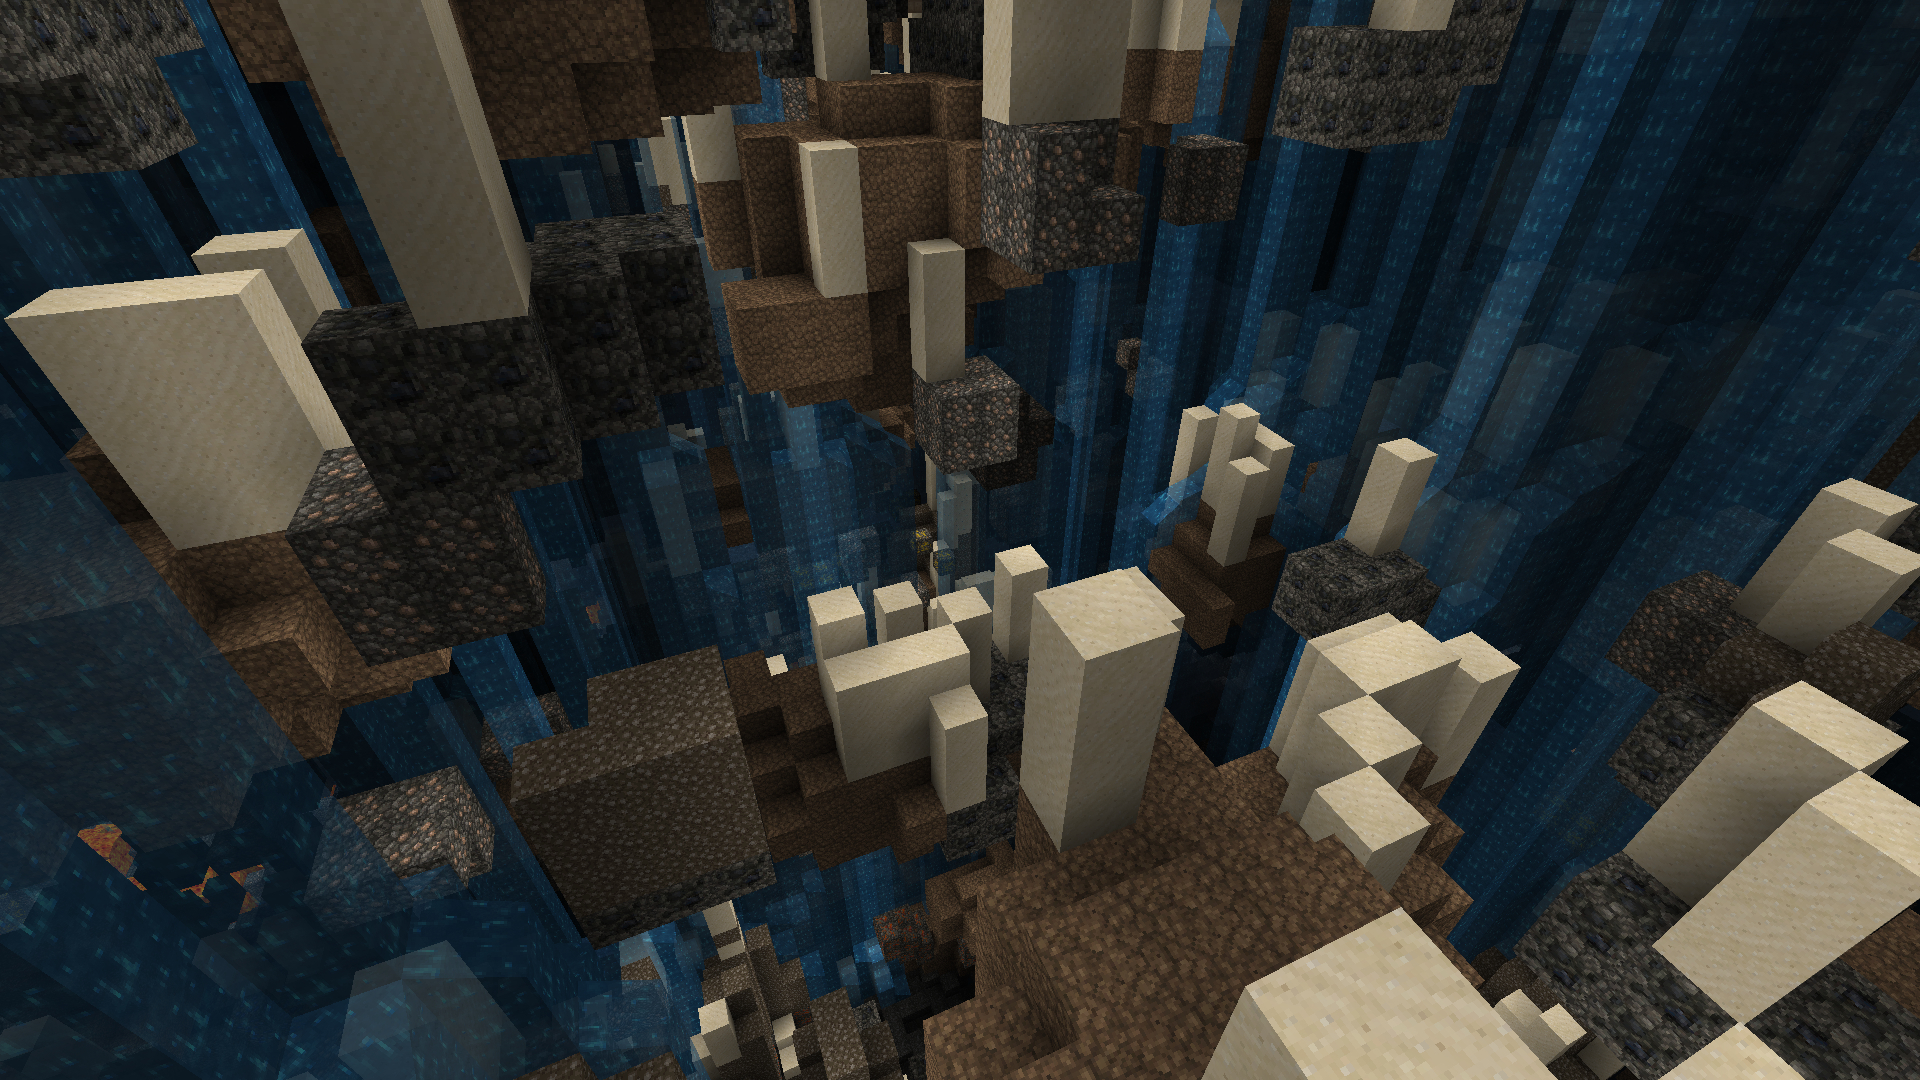 minecraft abstract underground video HD Wallpaper